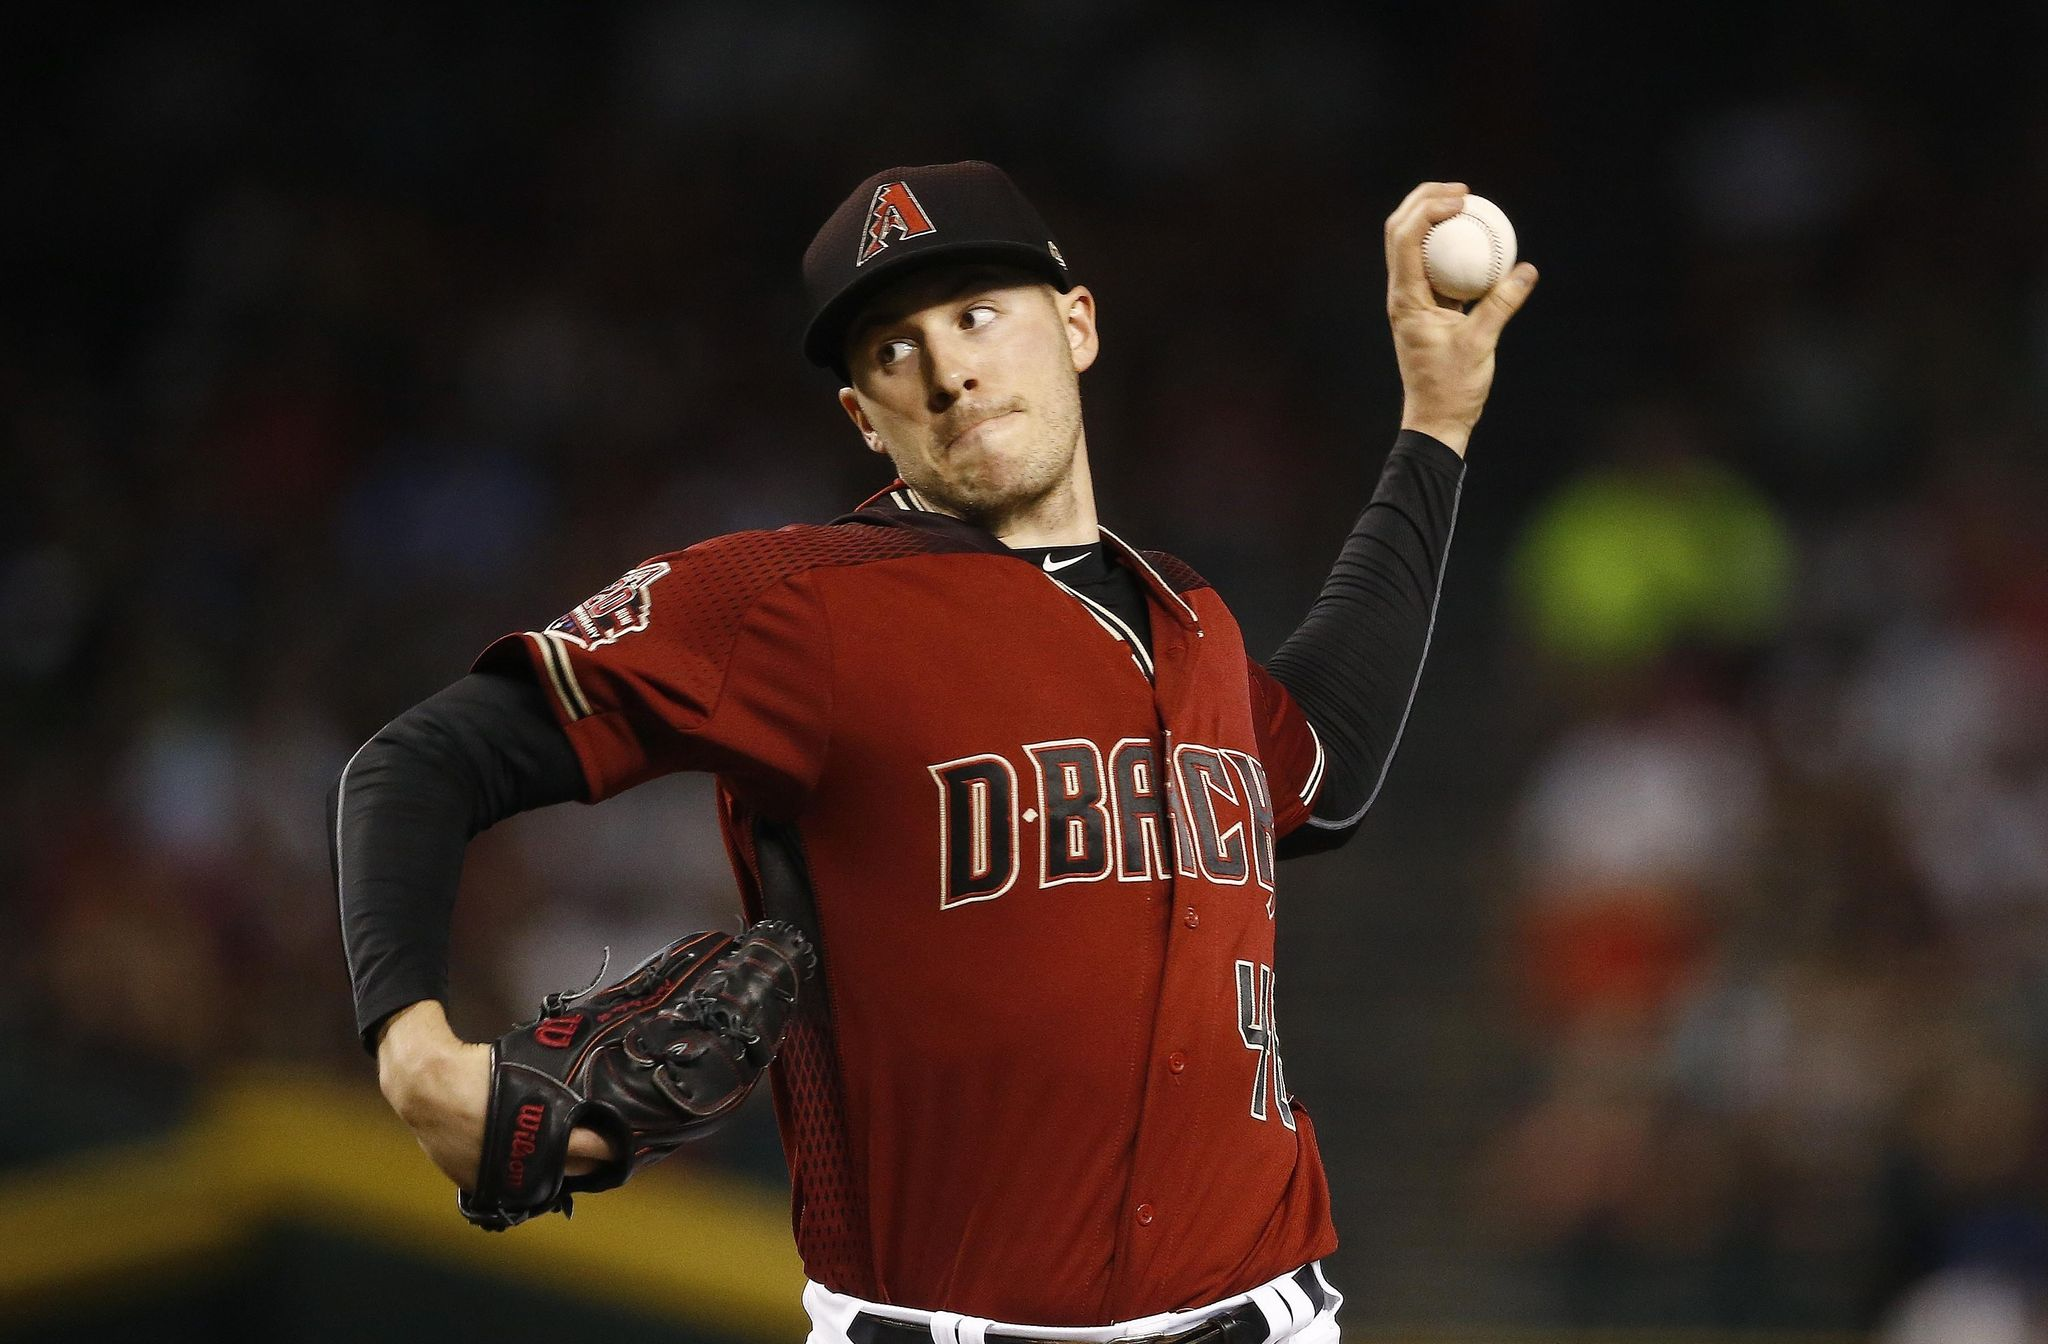 Padres_diamondbacks_baseball_49225_s2048x1344